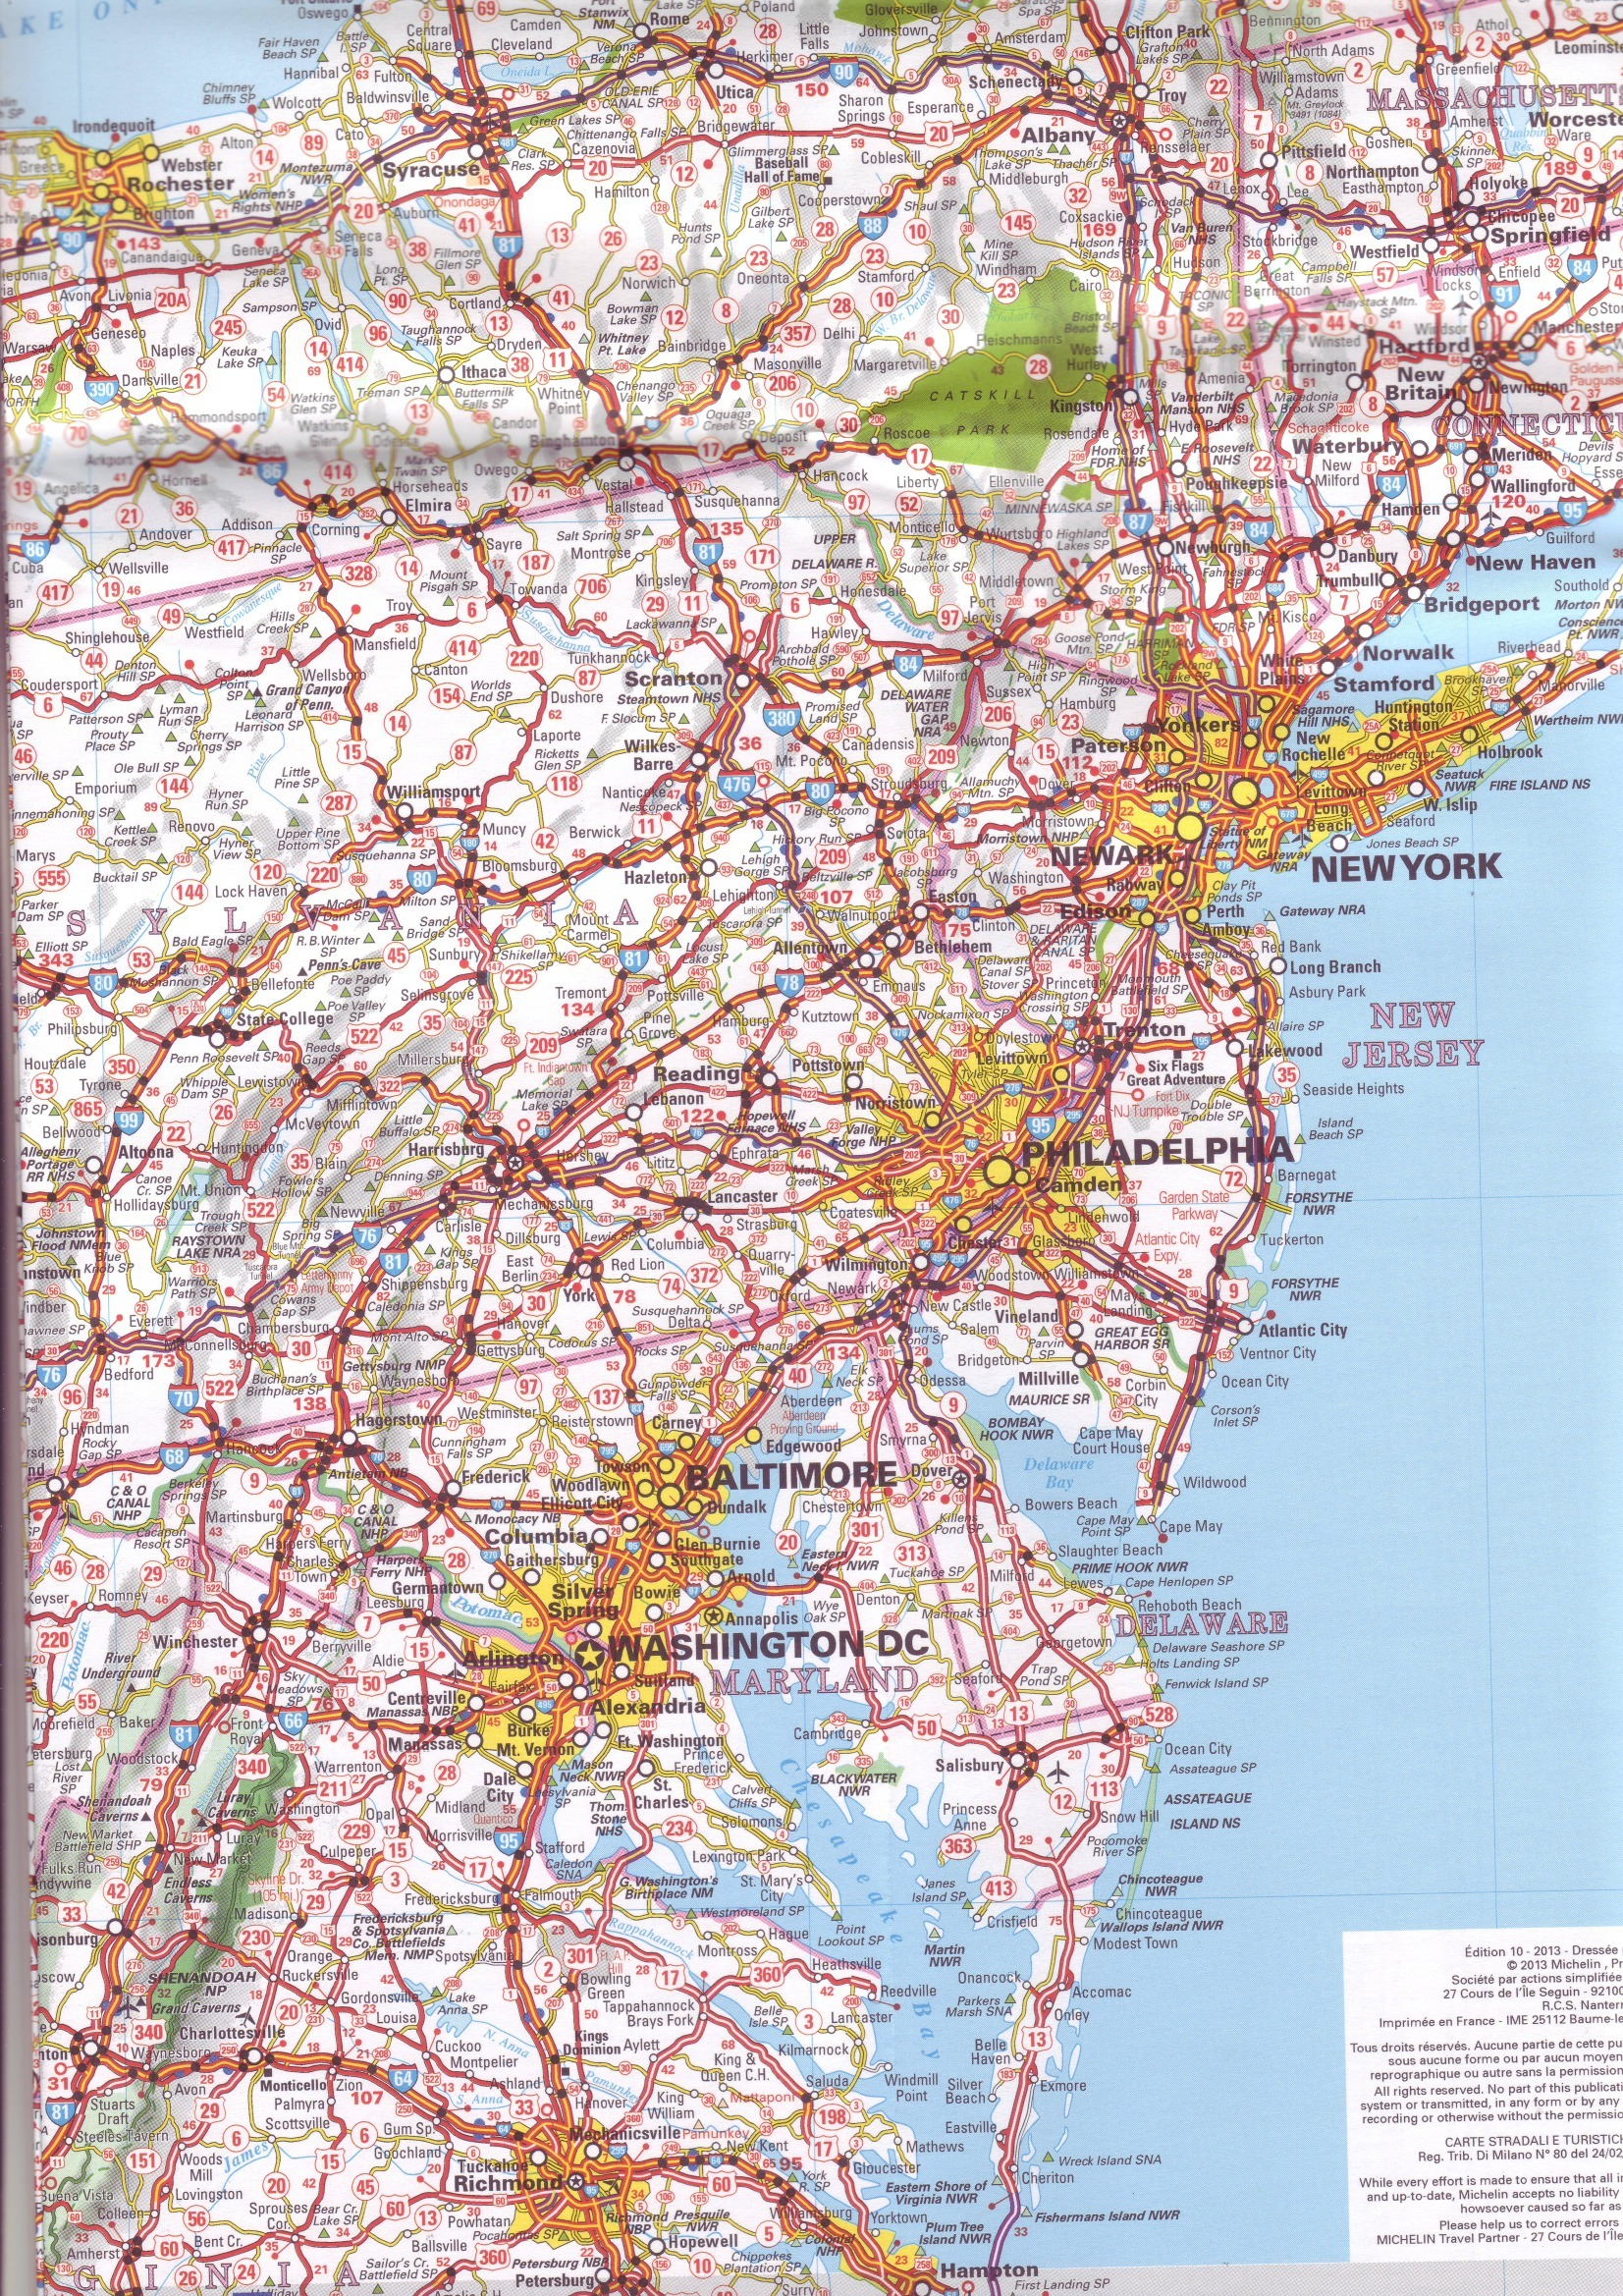 United States Of America Buy Maps And Travel Guides Online - Rand macnally southwestern us road map